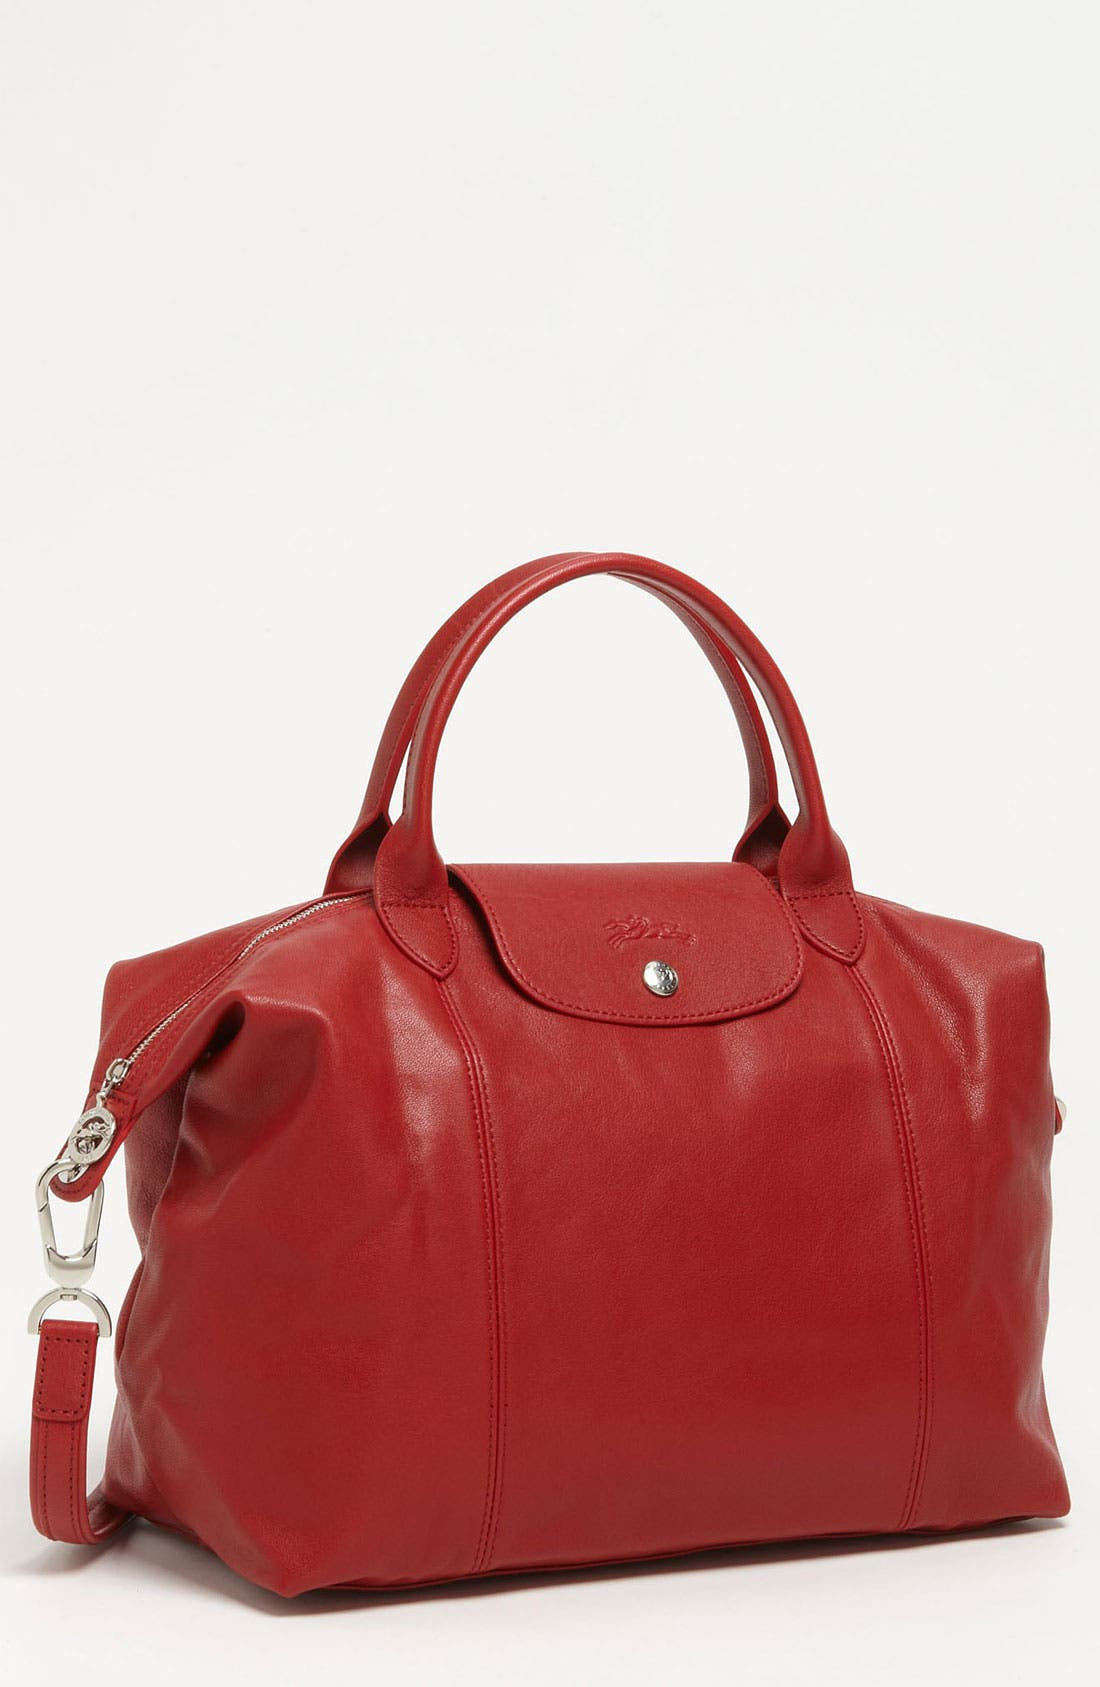 Medium 'Le Pliage Cuir' Leather Top Handle Tote,                             Main thumbnail 22, color,